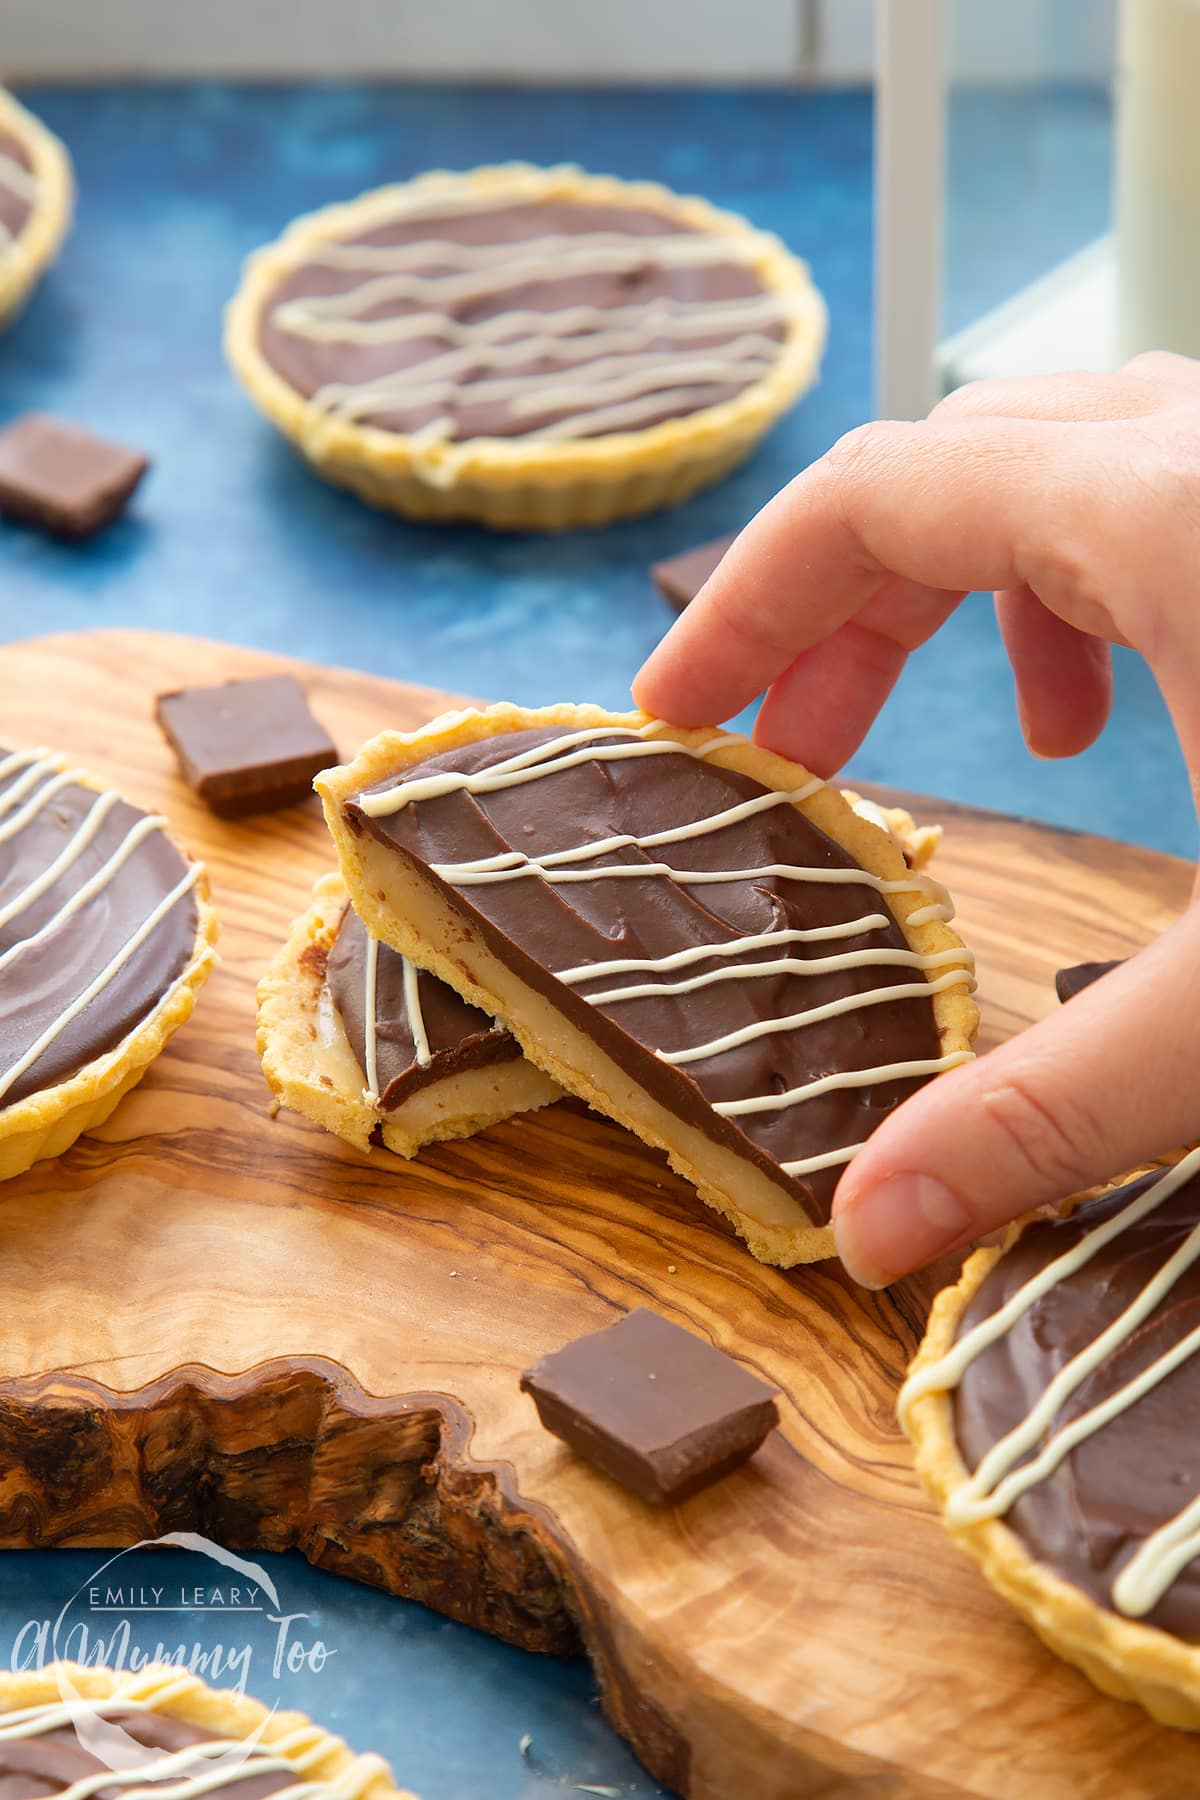 Mini chocolate tarts on an olive board. One tart has been cut in half. A hand holds a piece.